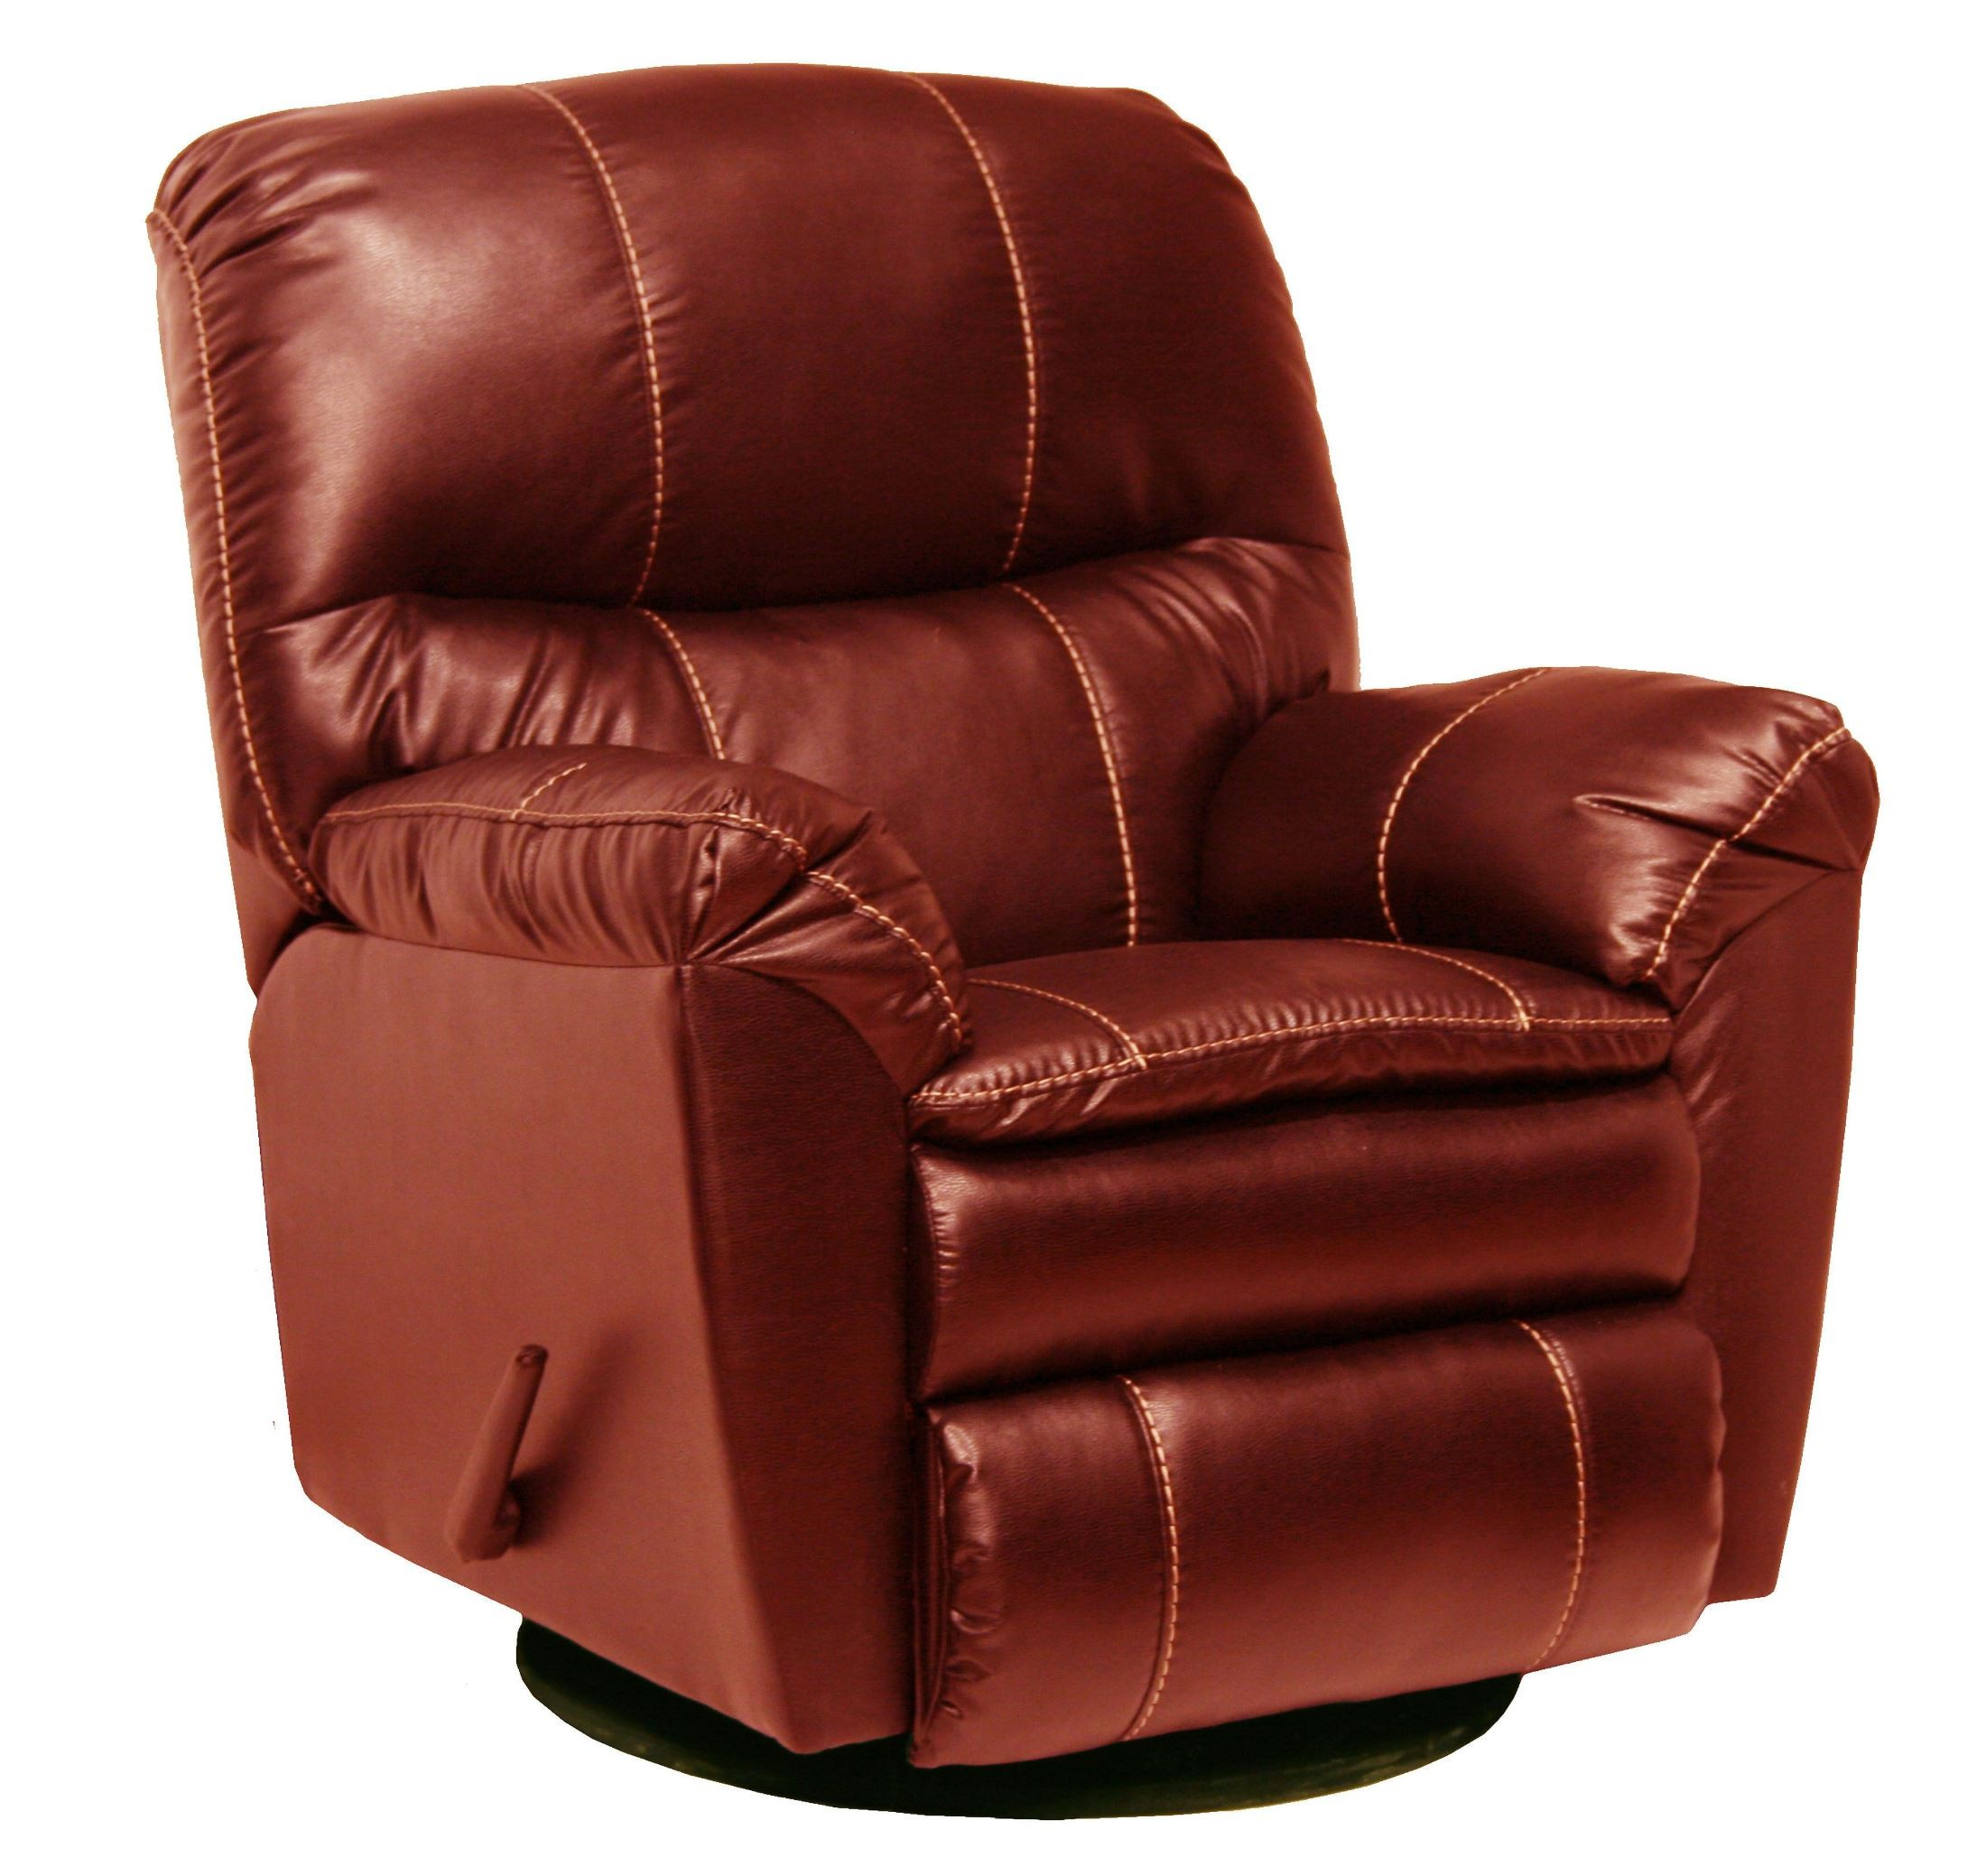 Red Swivel Chair Cosmo Red Leather Swivel Glider Recliner From Catnapper